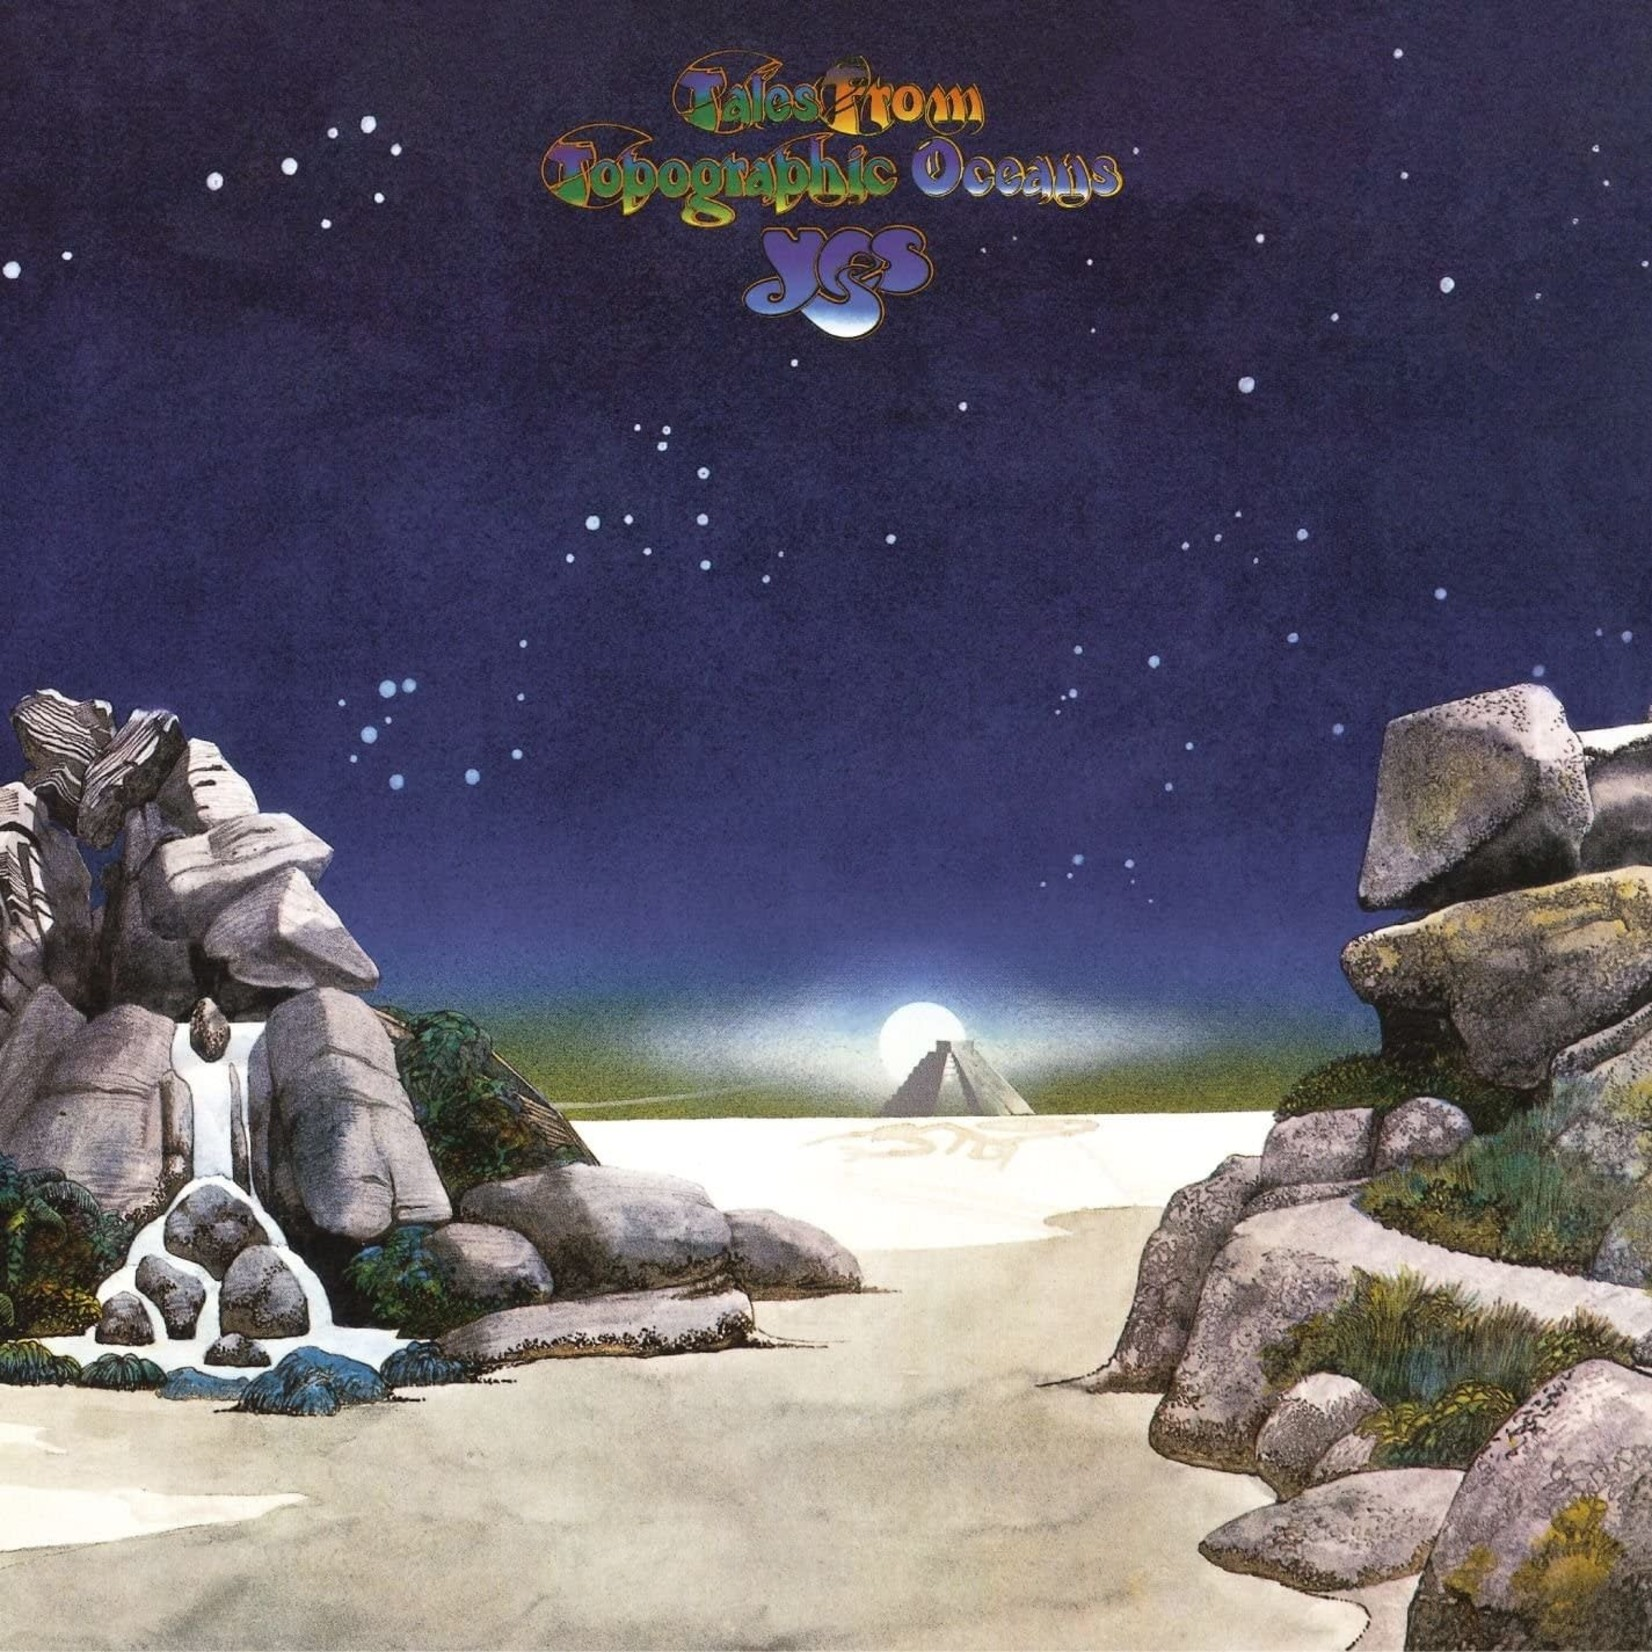 [Vintage] Yes: Tales From the Topographic Oceans